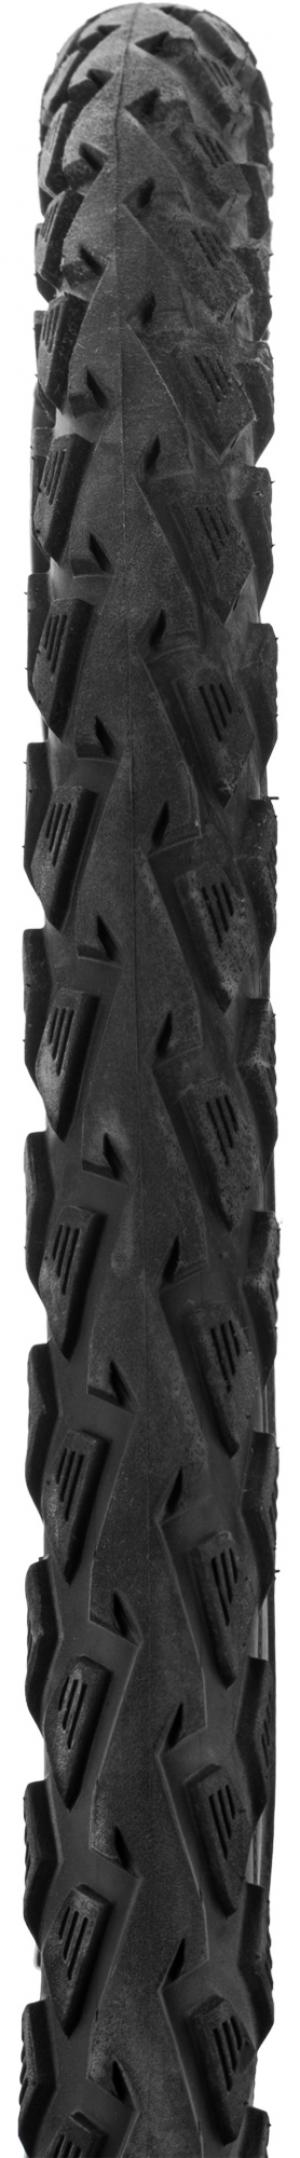 Покрышка  Land Cruiser Plus 27,5 x 2,00 Schwalbe